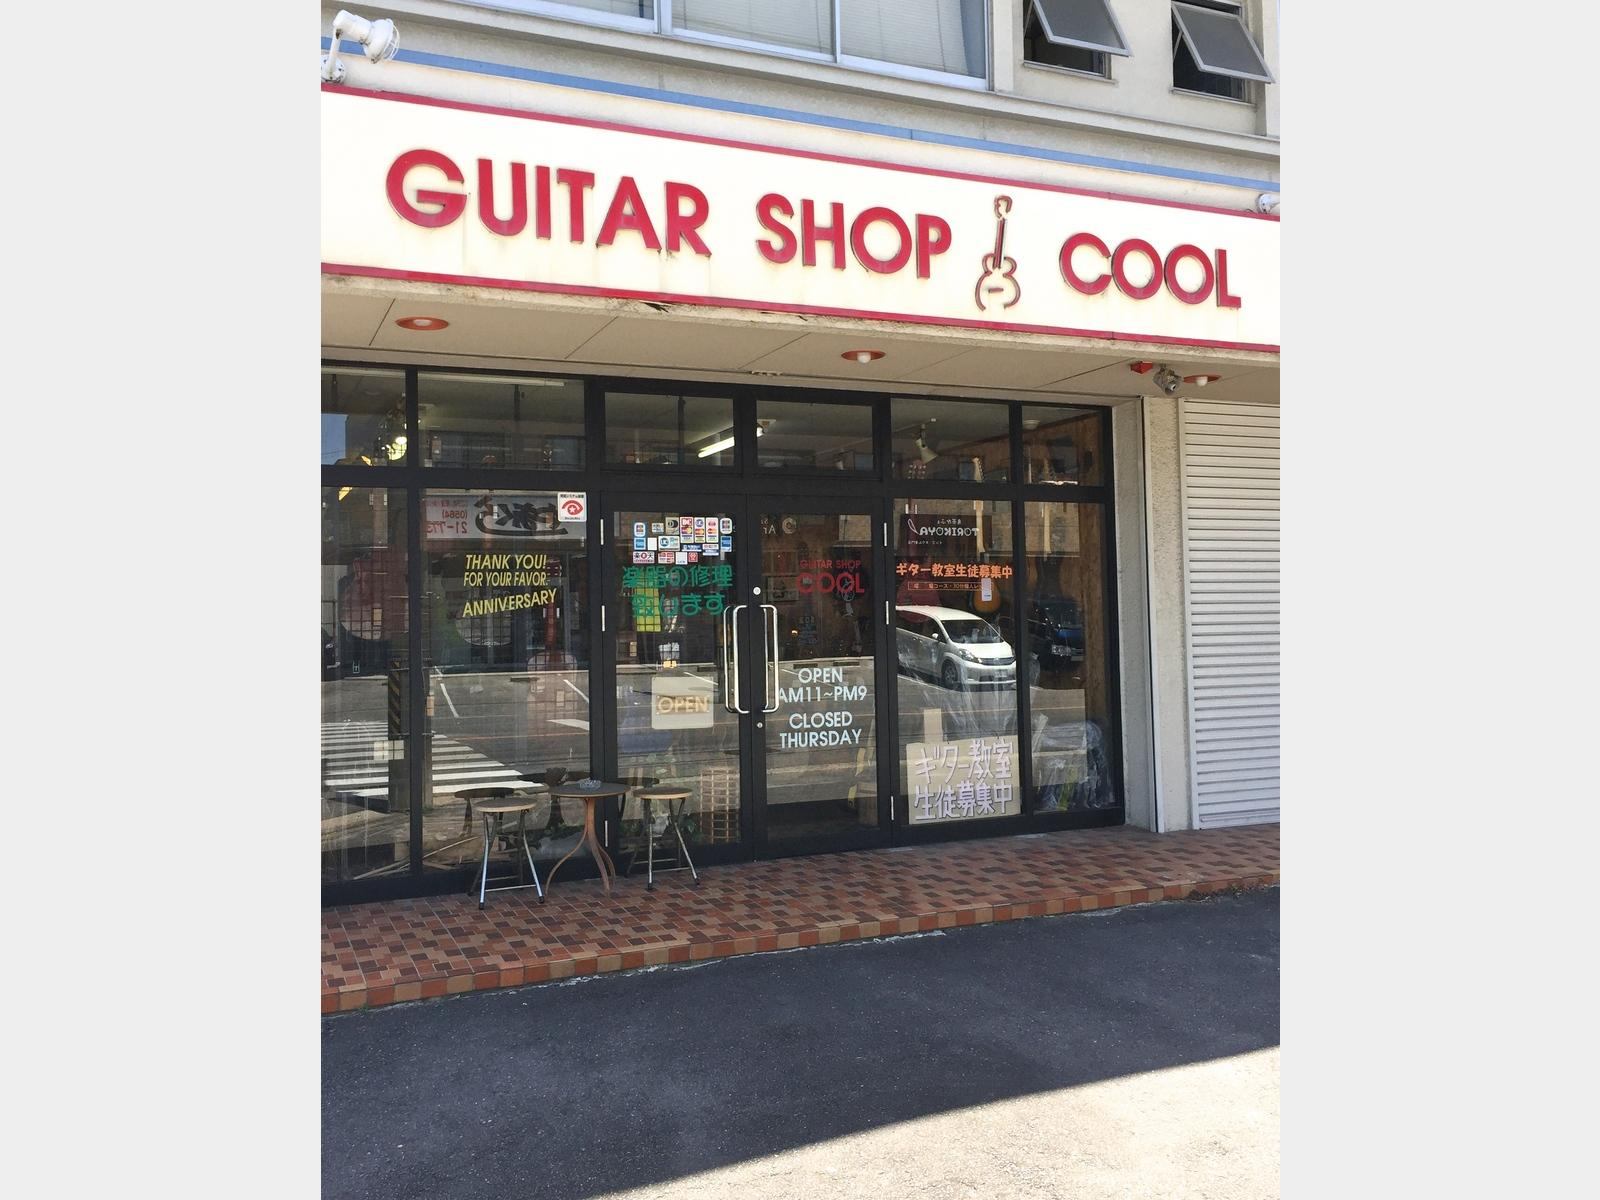 GUITAR SHOP COOL